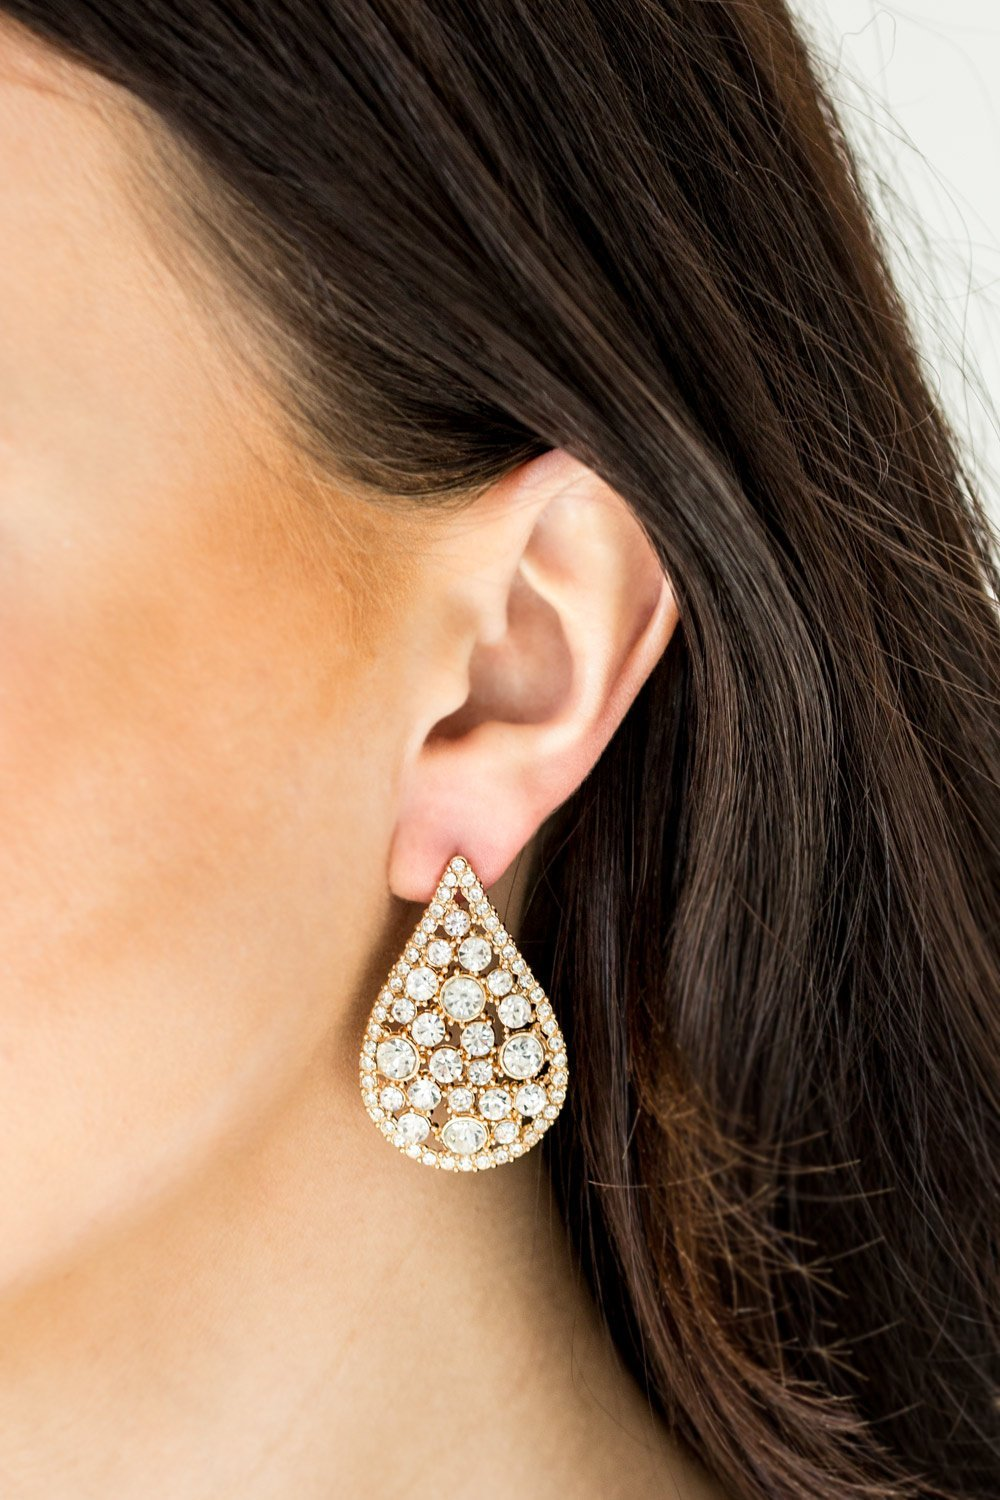 Oversized Teardrop Stud Earrings-Article & Thread Boutique